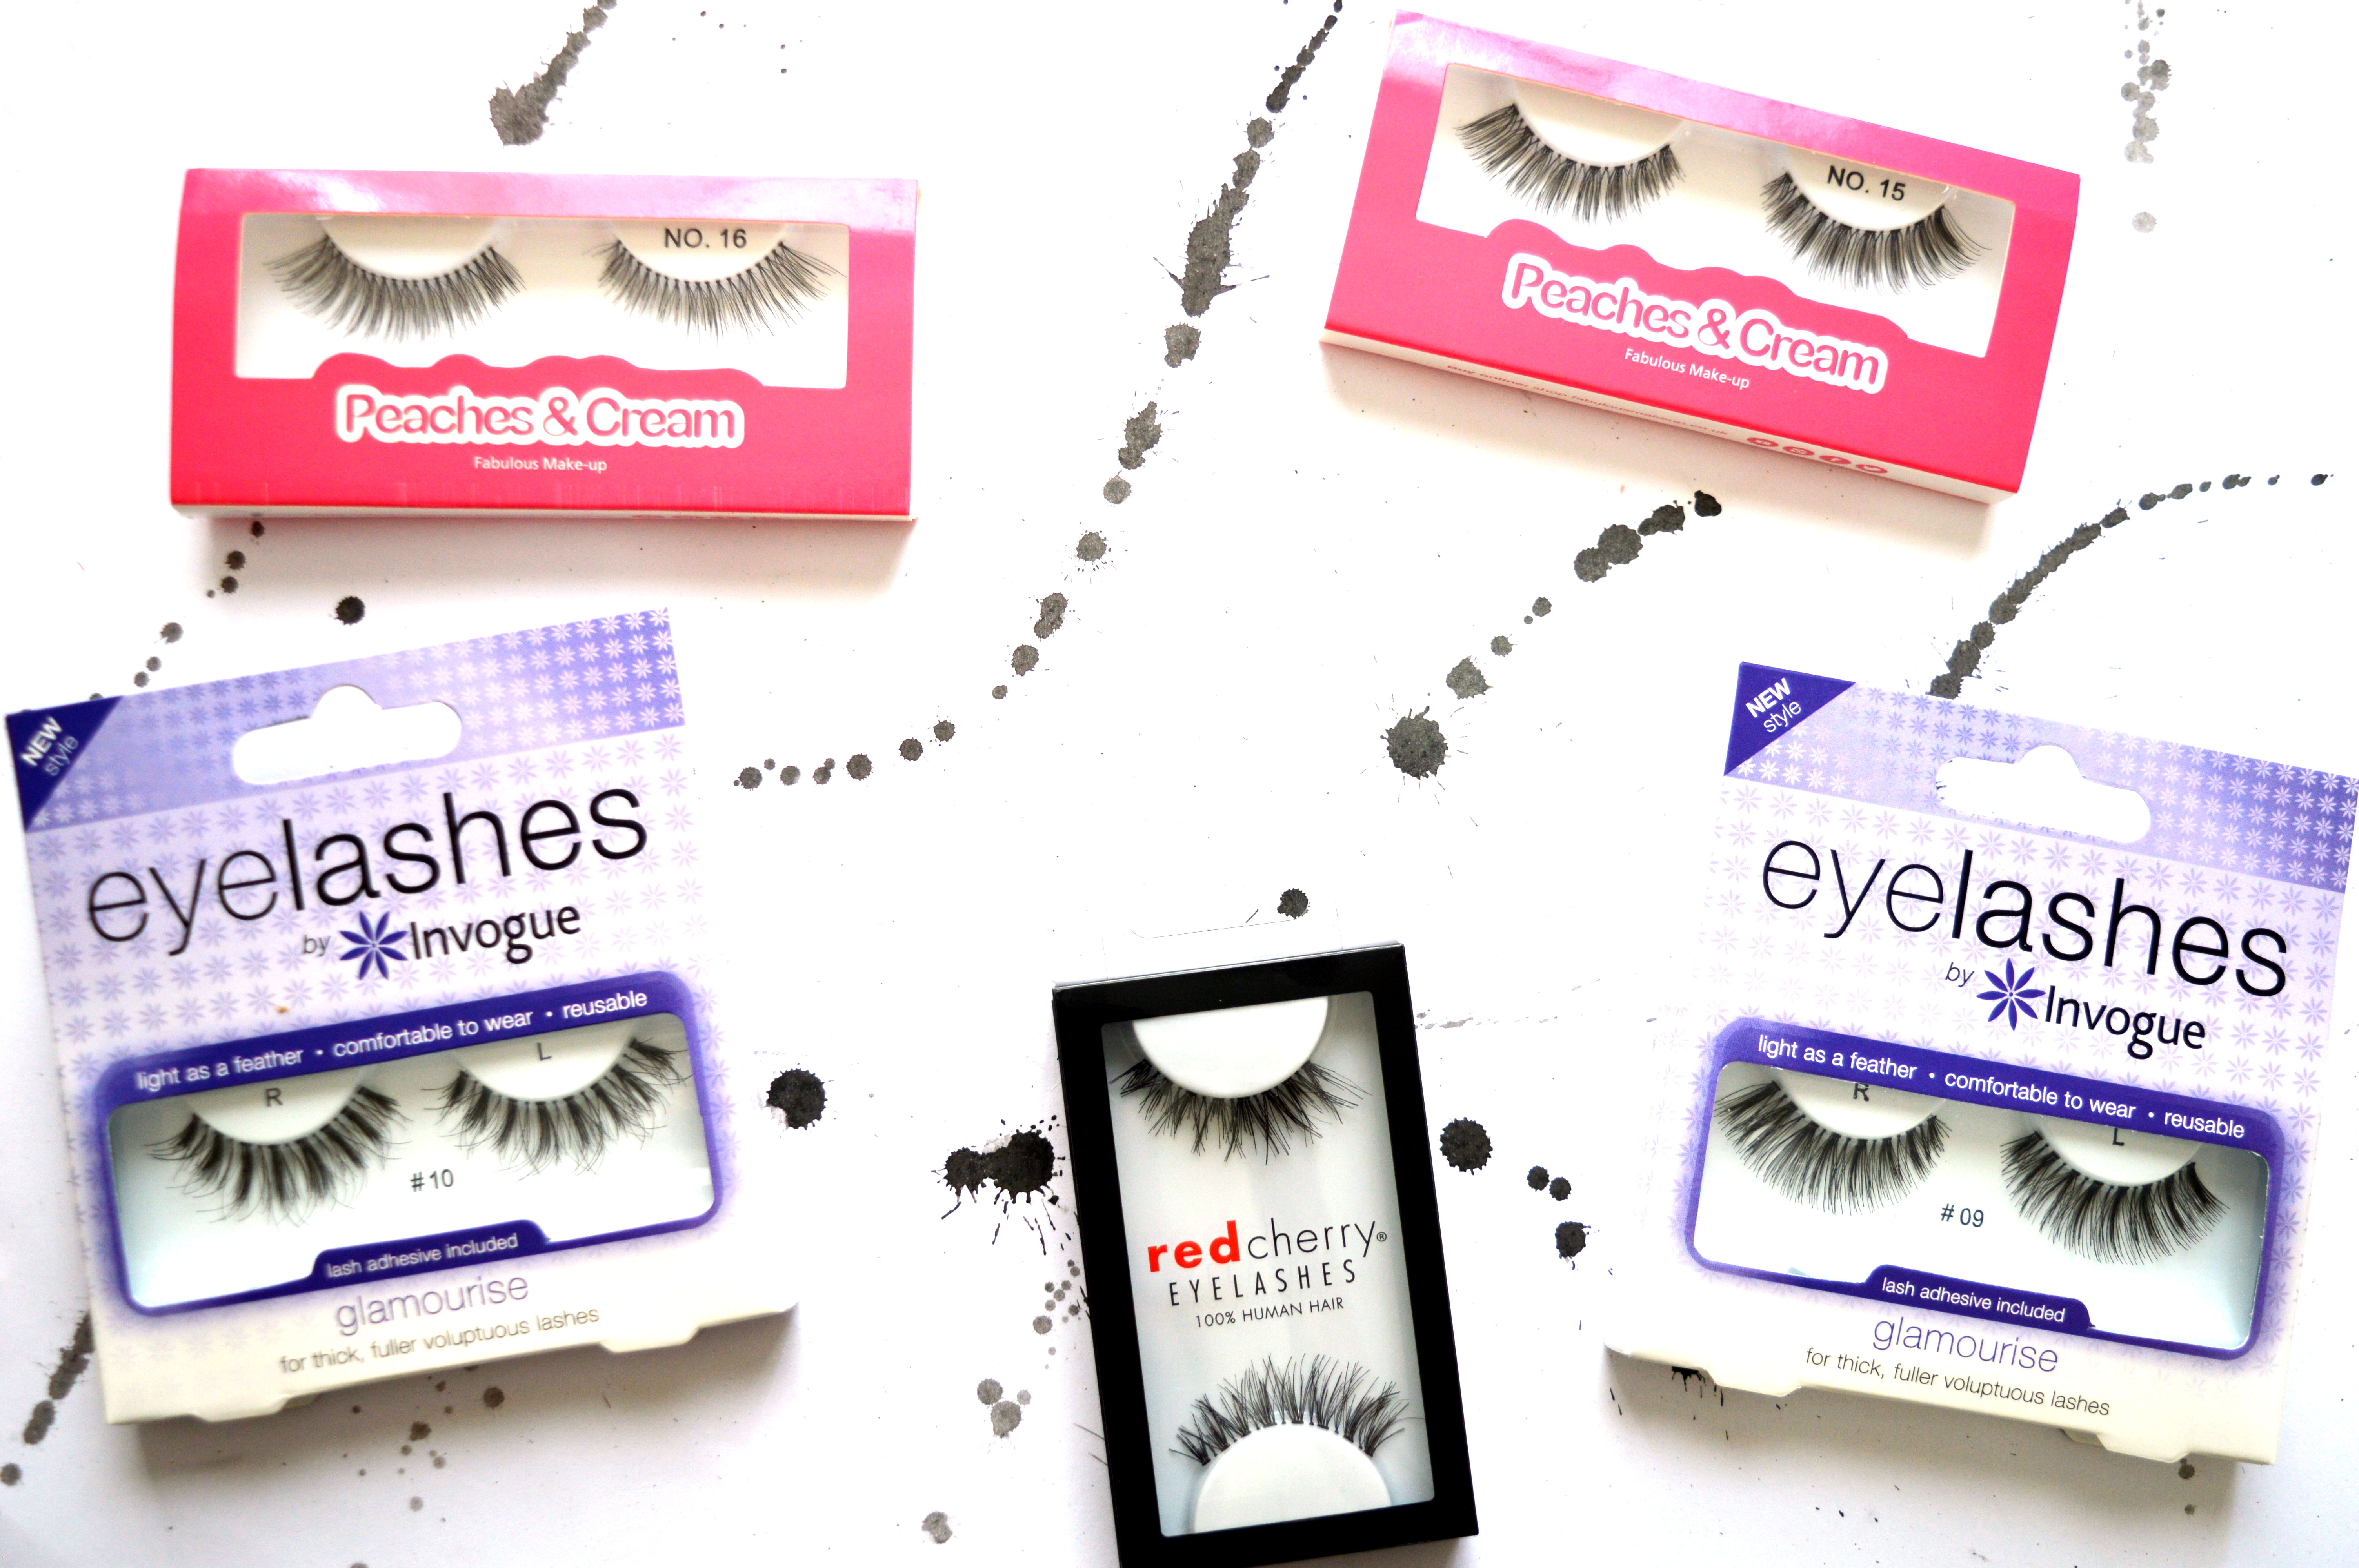 Falseeyelashes.co.uk haul